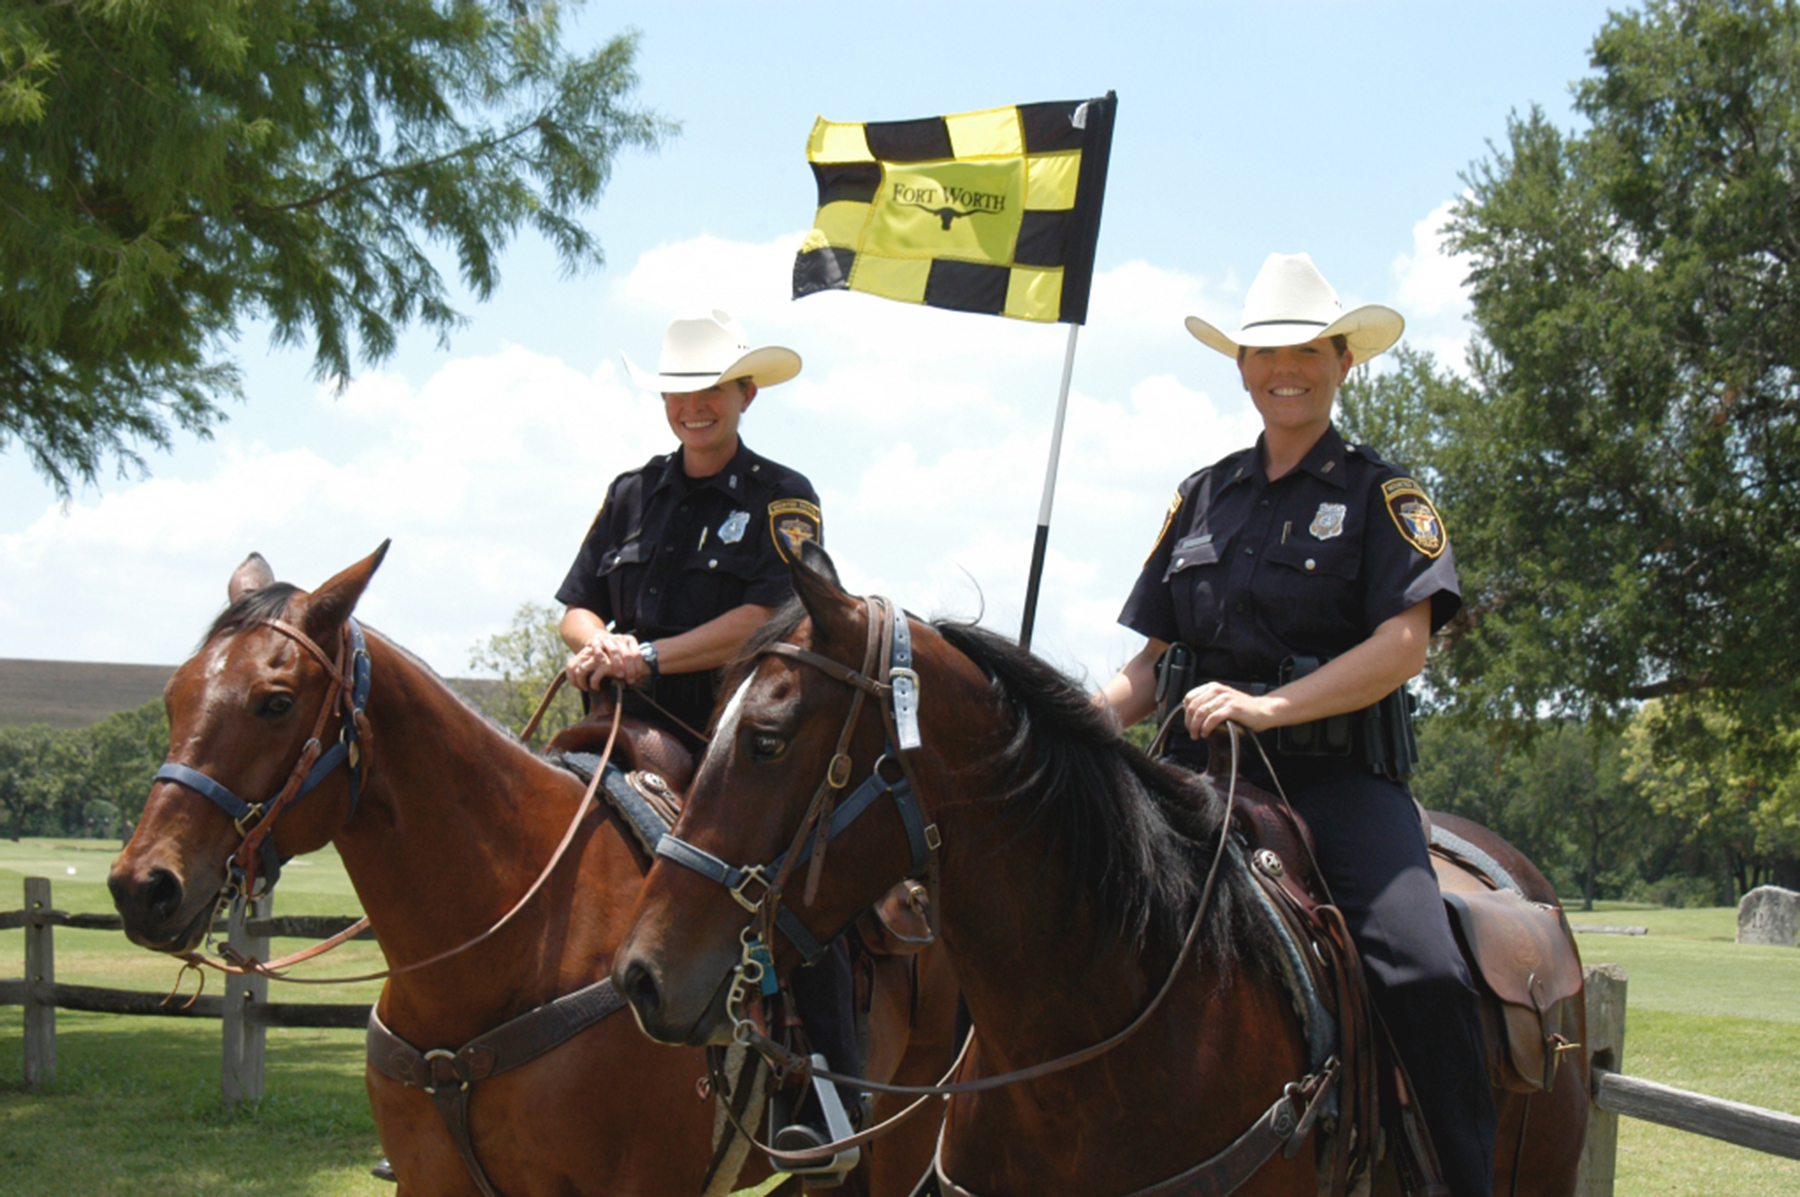 Two mounted female police